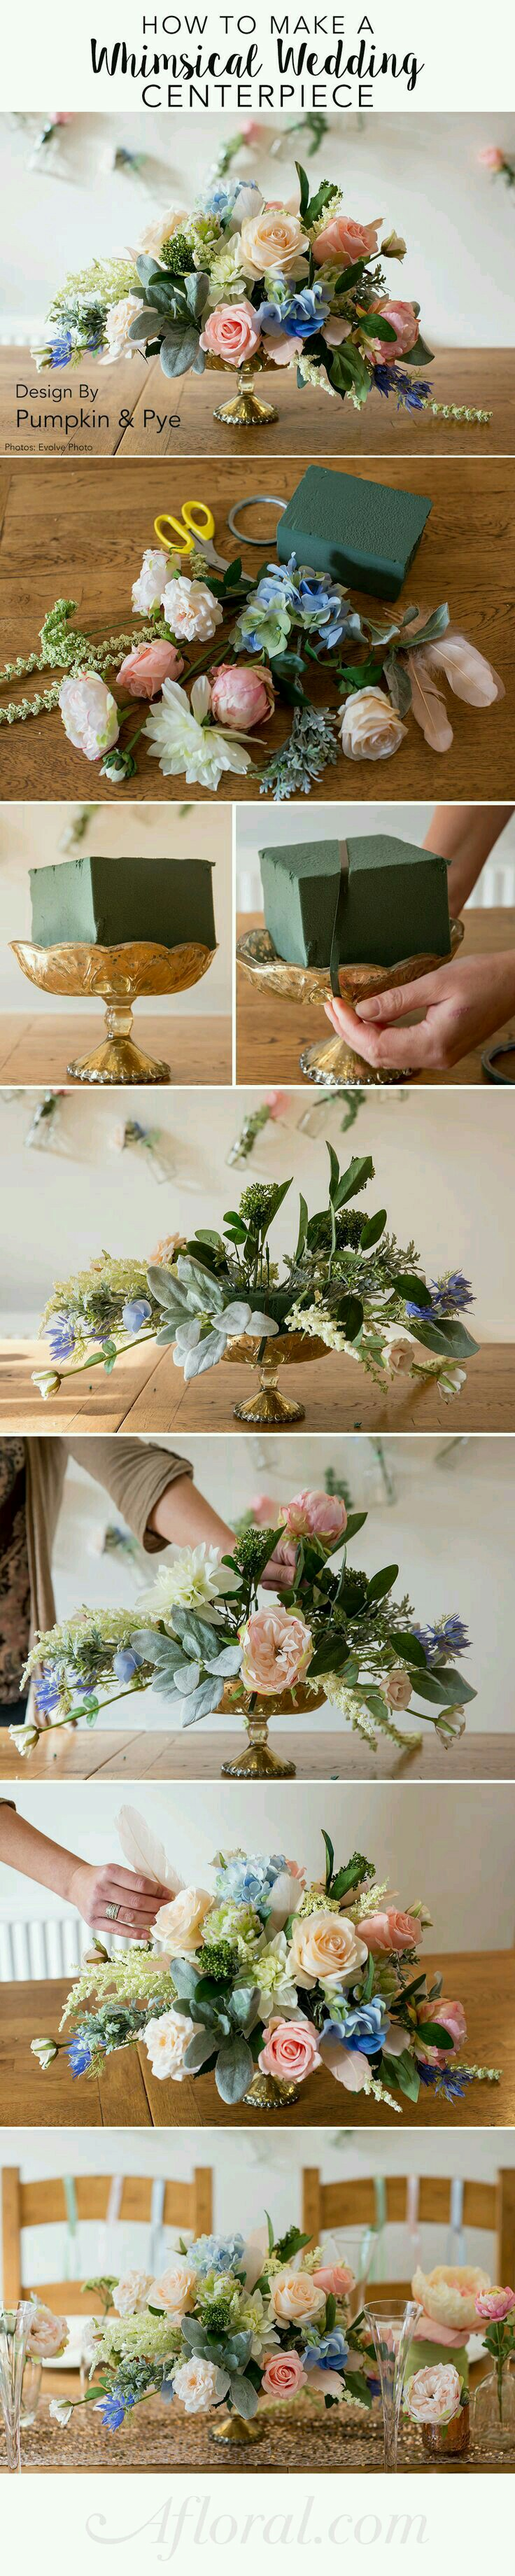 Pin By Ela Gzlm On Fikir Pinterest Flower Arrangements Flower